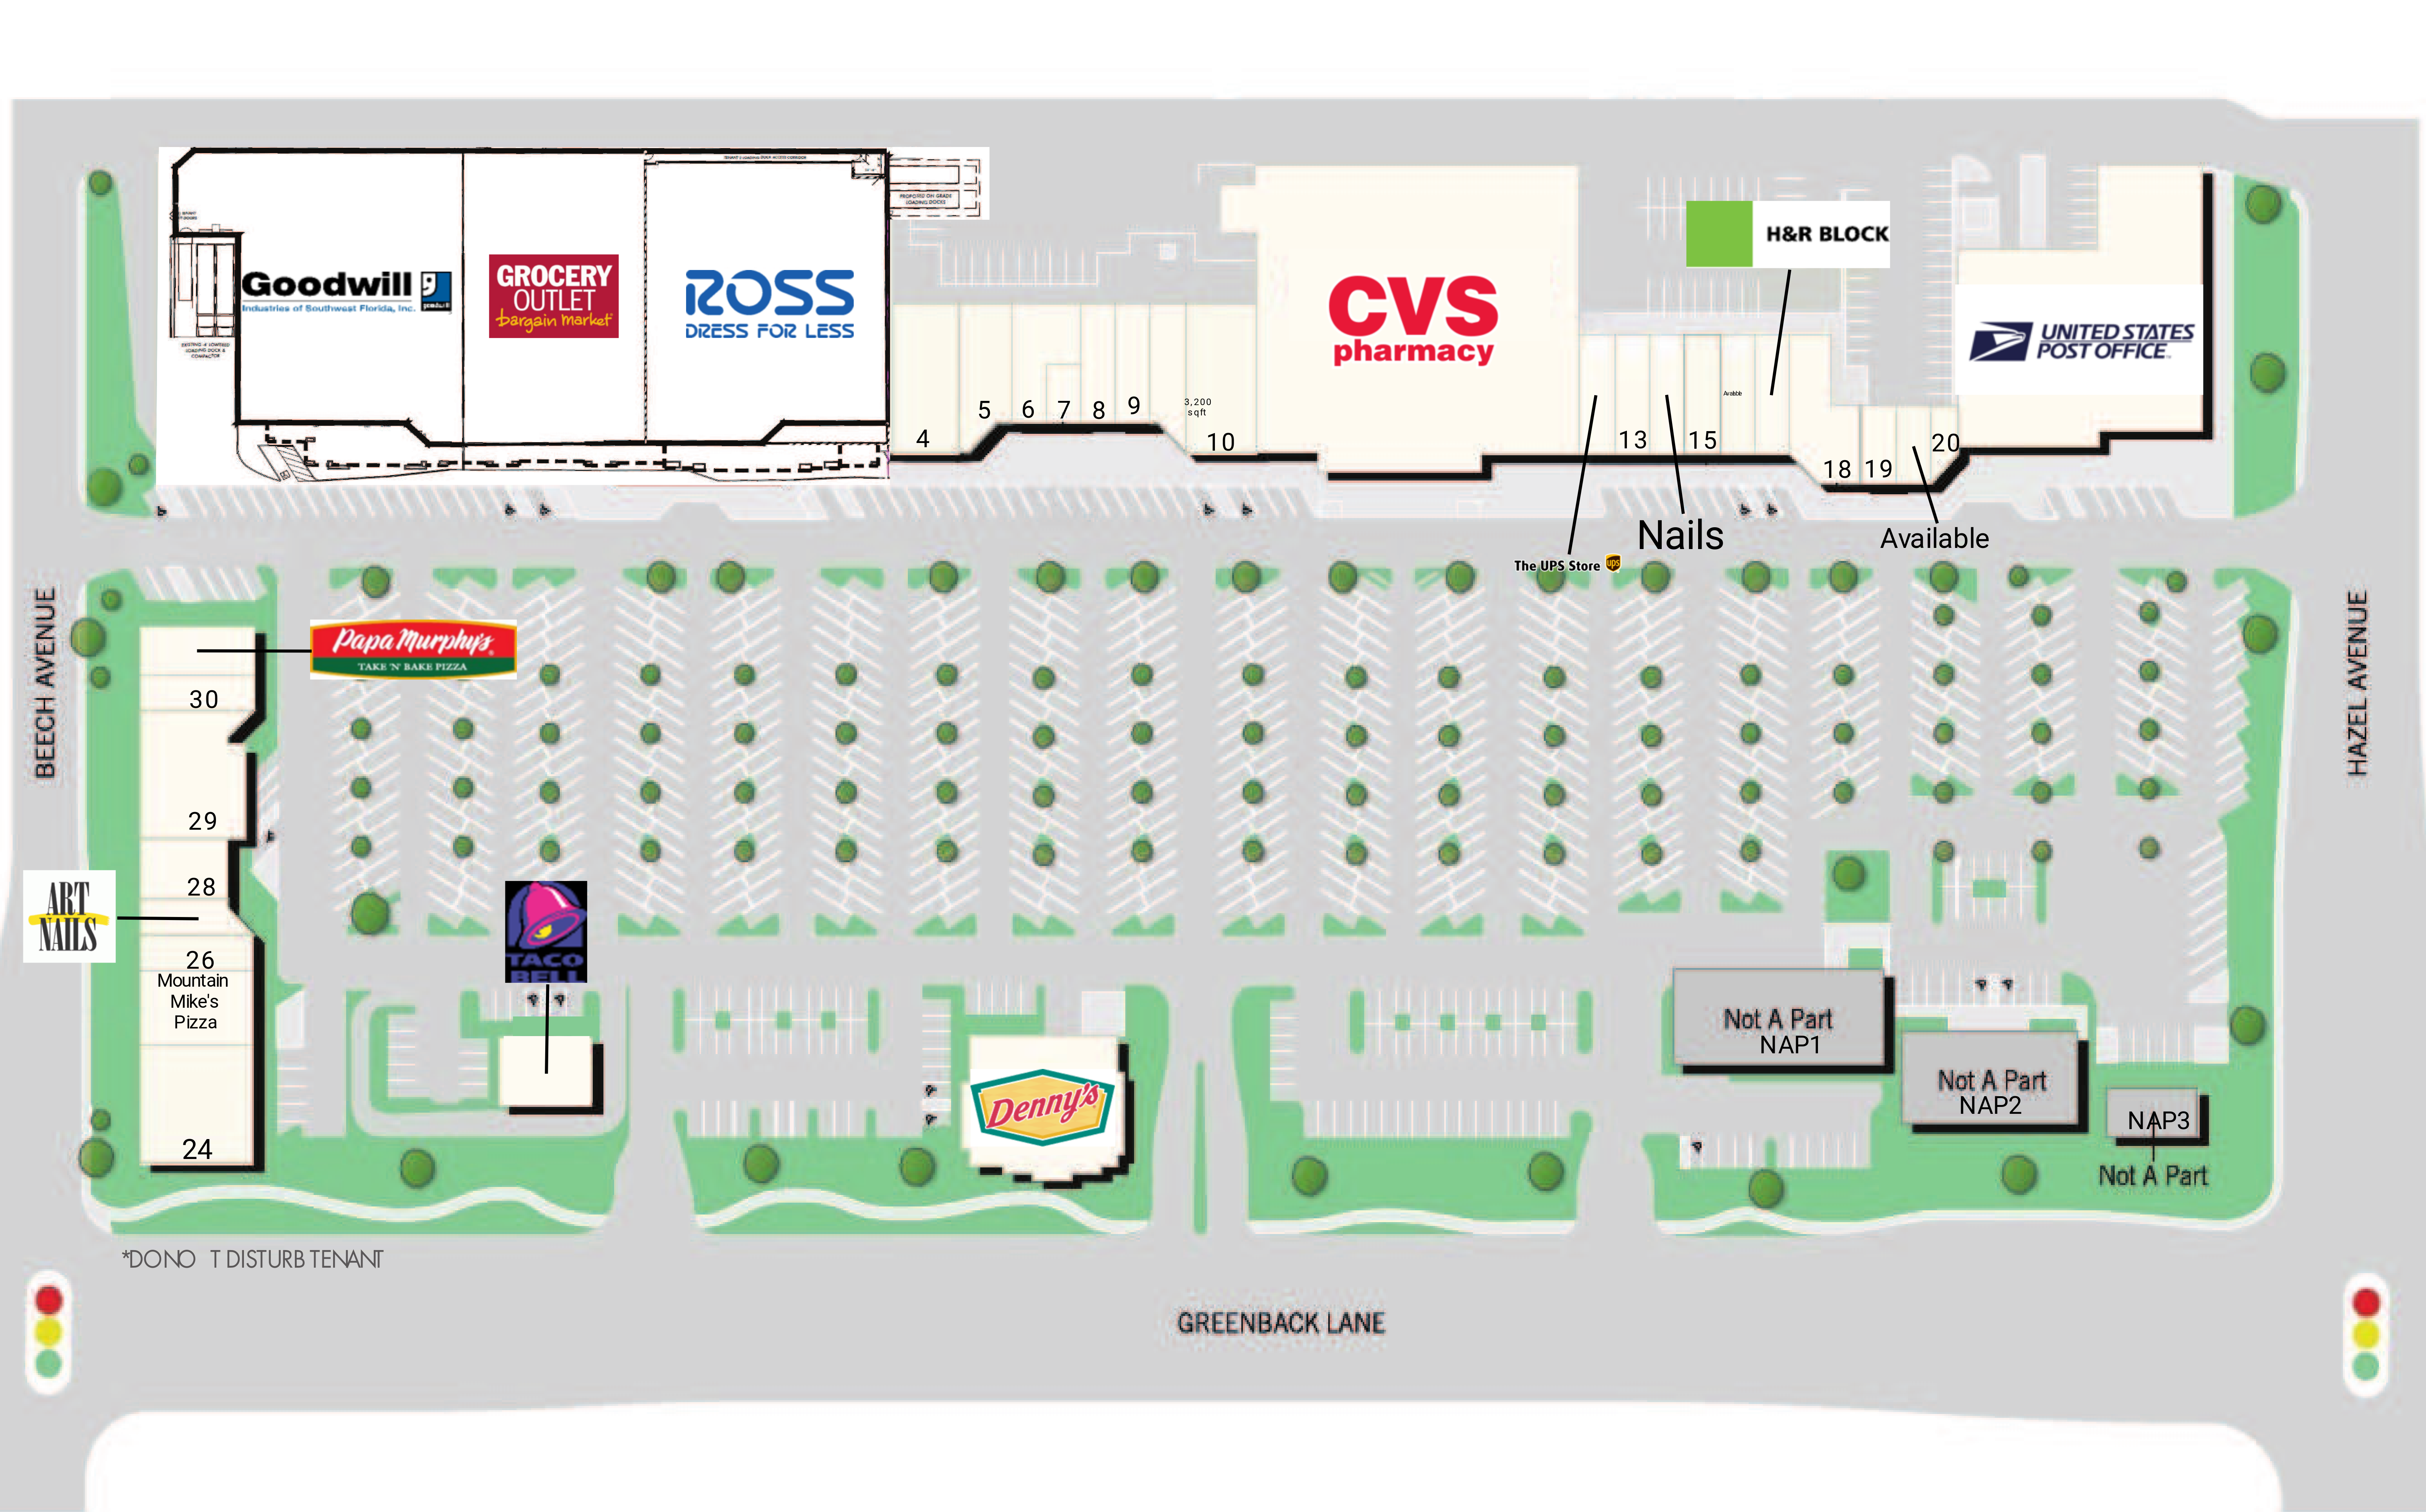 Cable Park Shopping Center: site plan